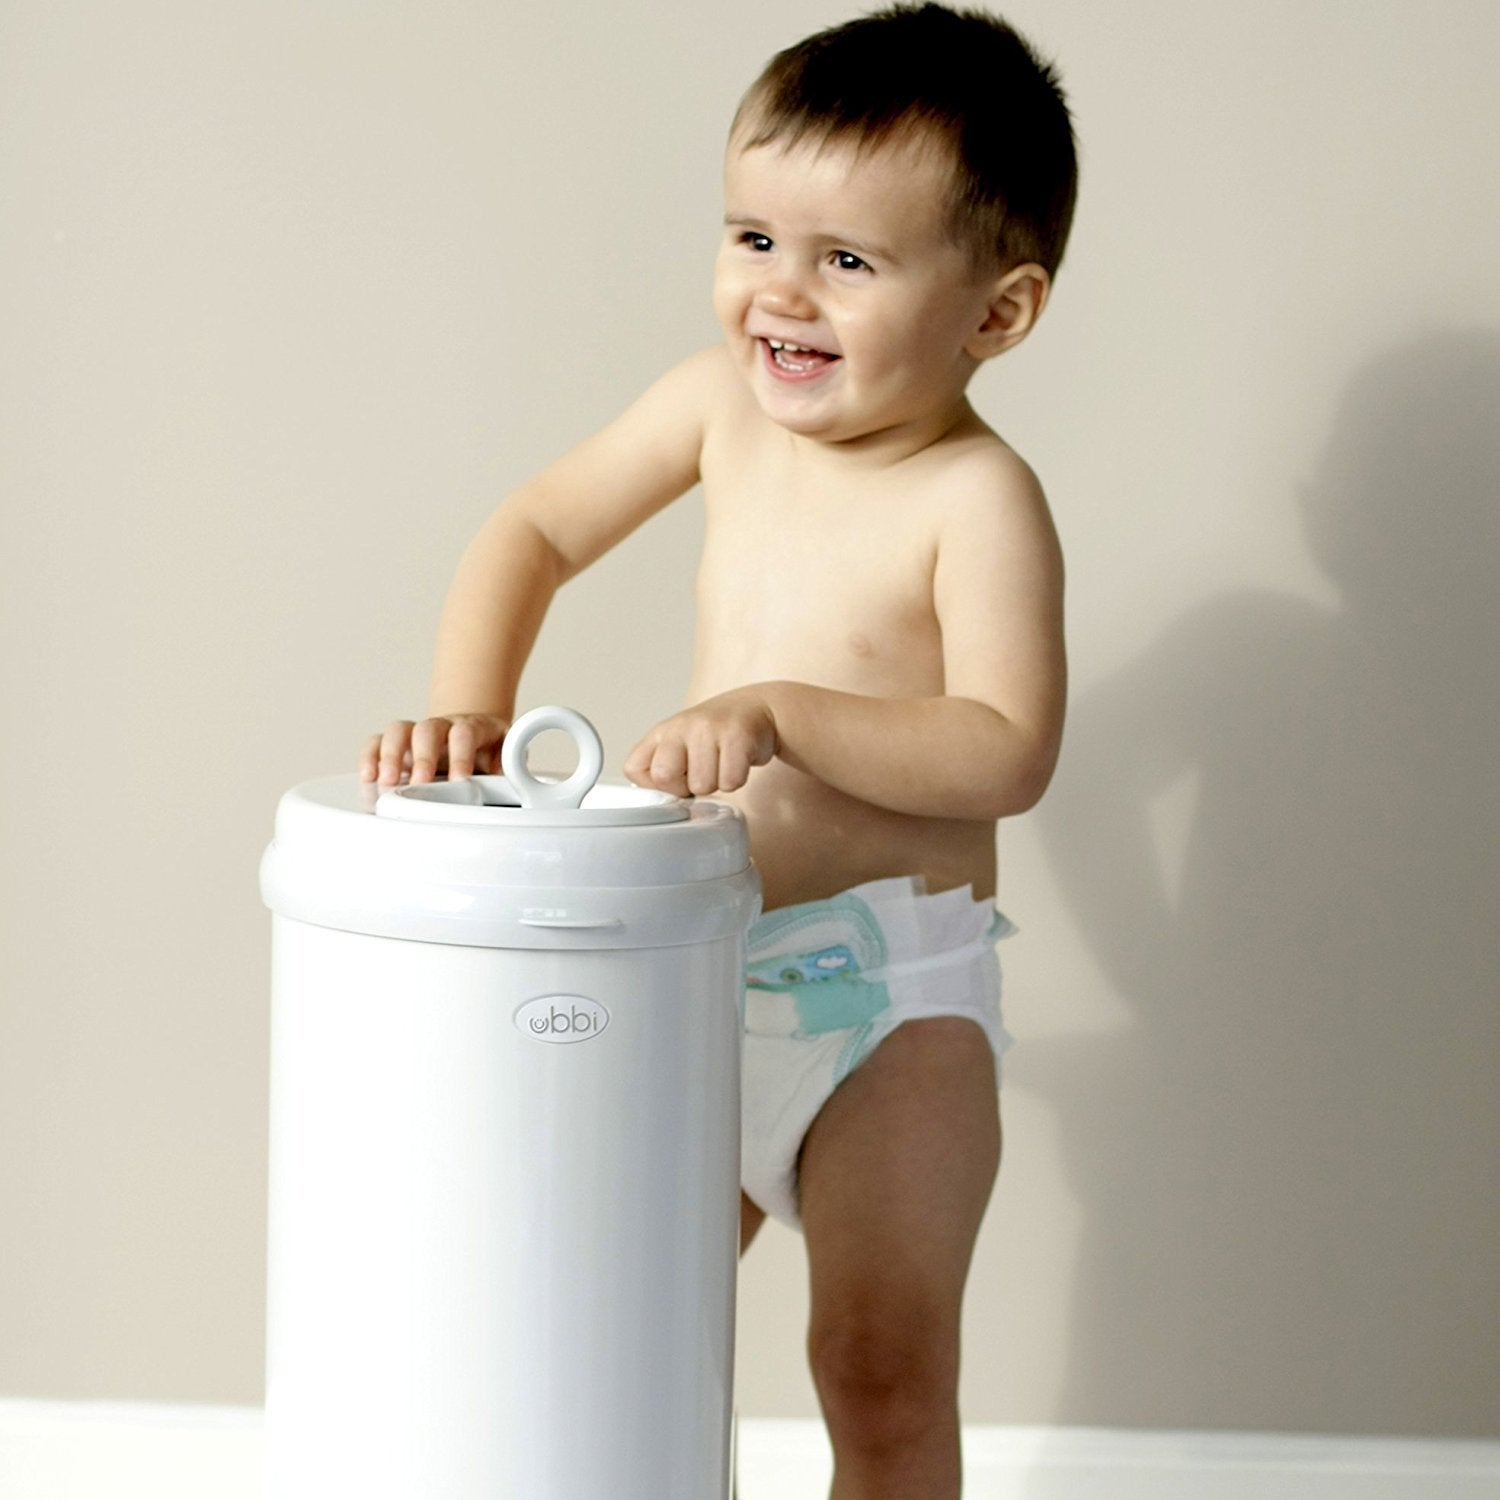 Ubbi Diaper Pail in Cloudy Blue